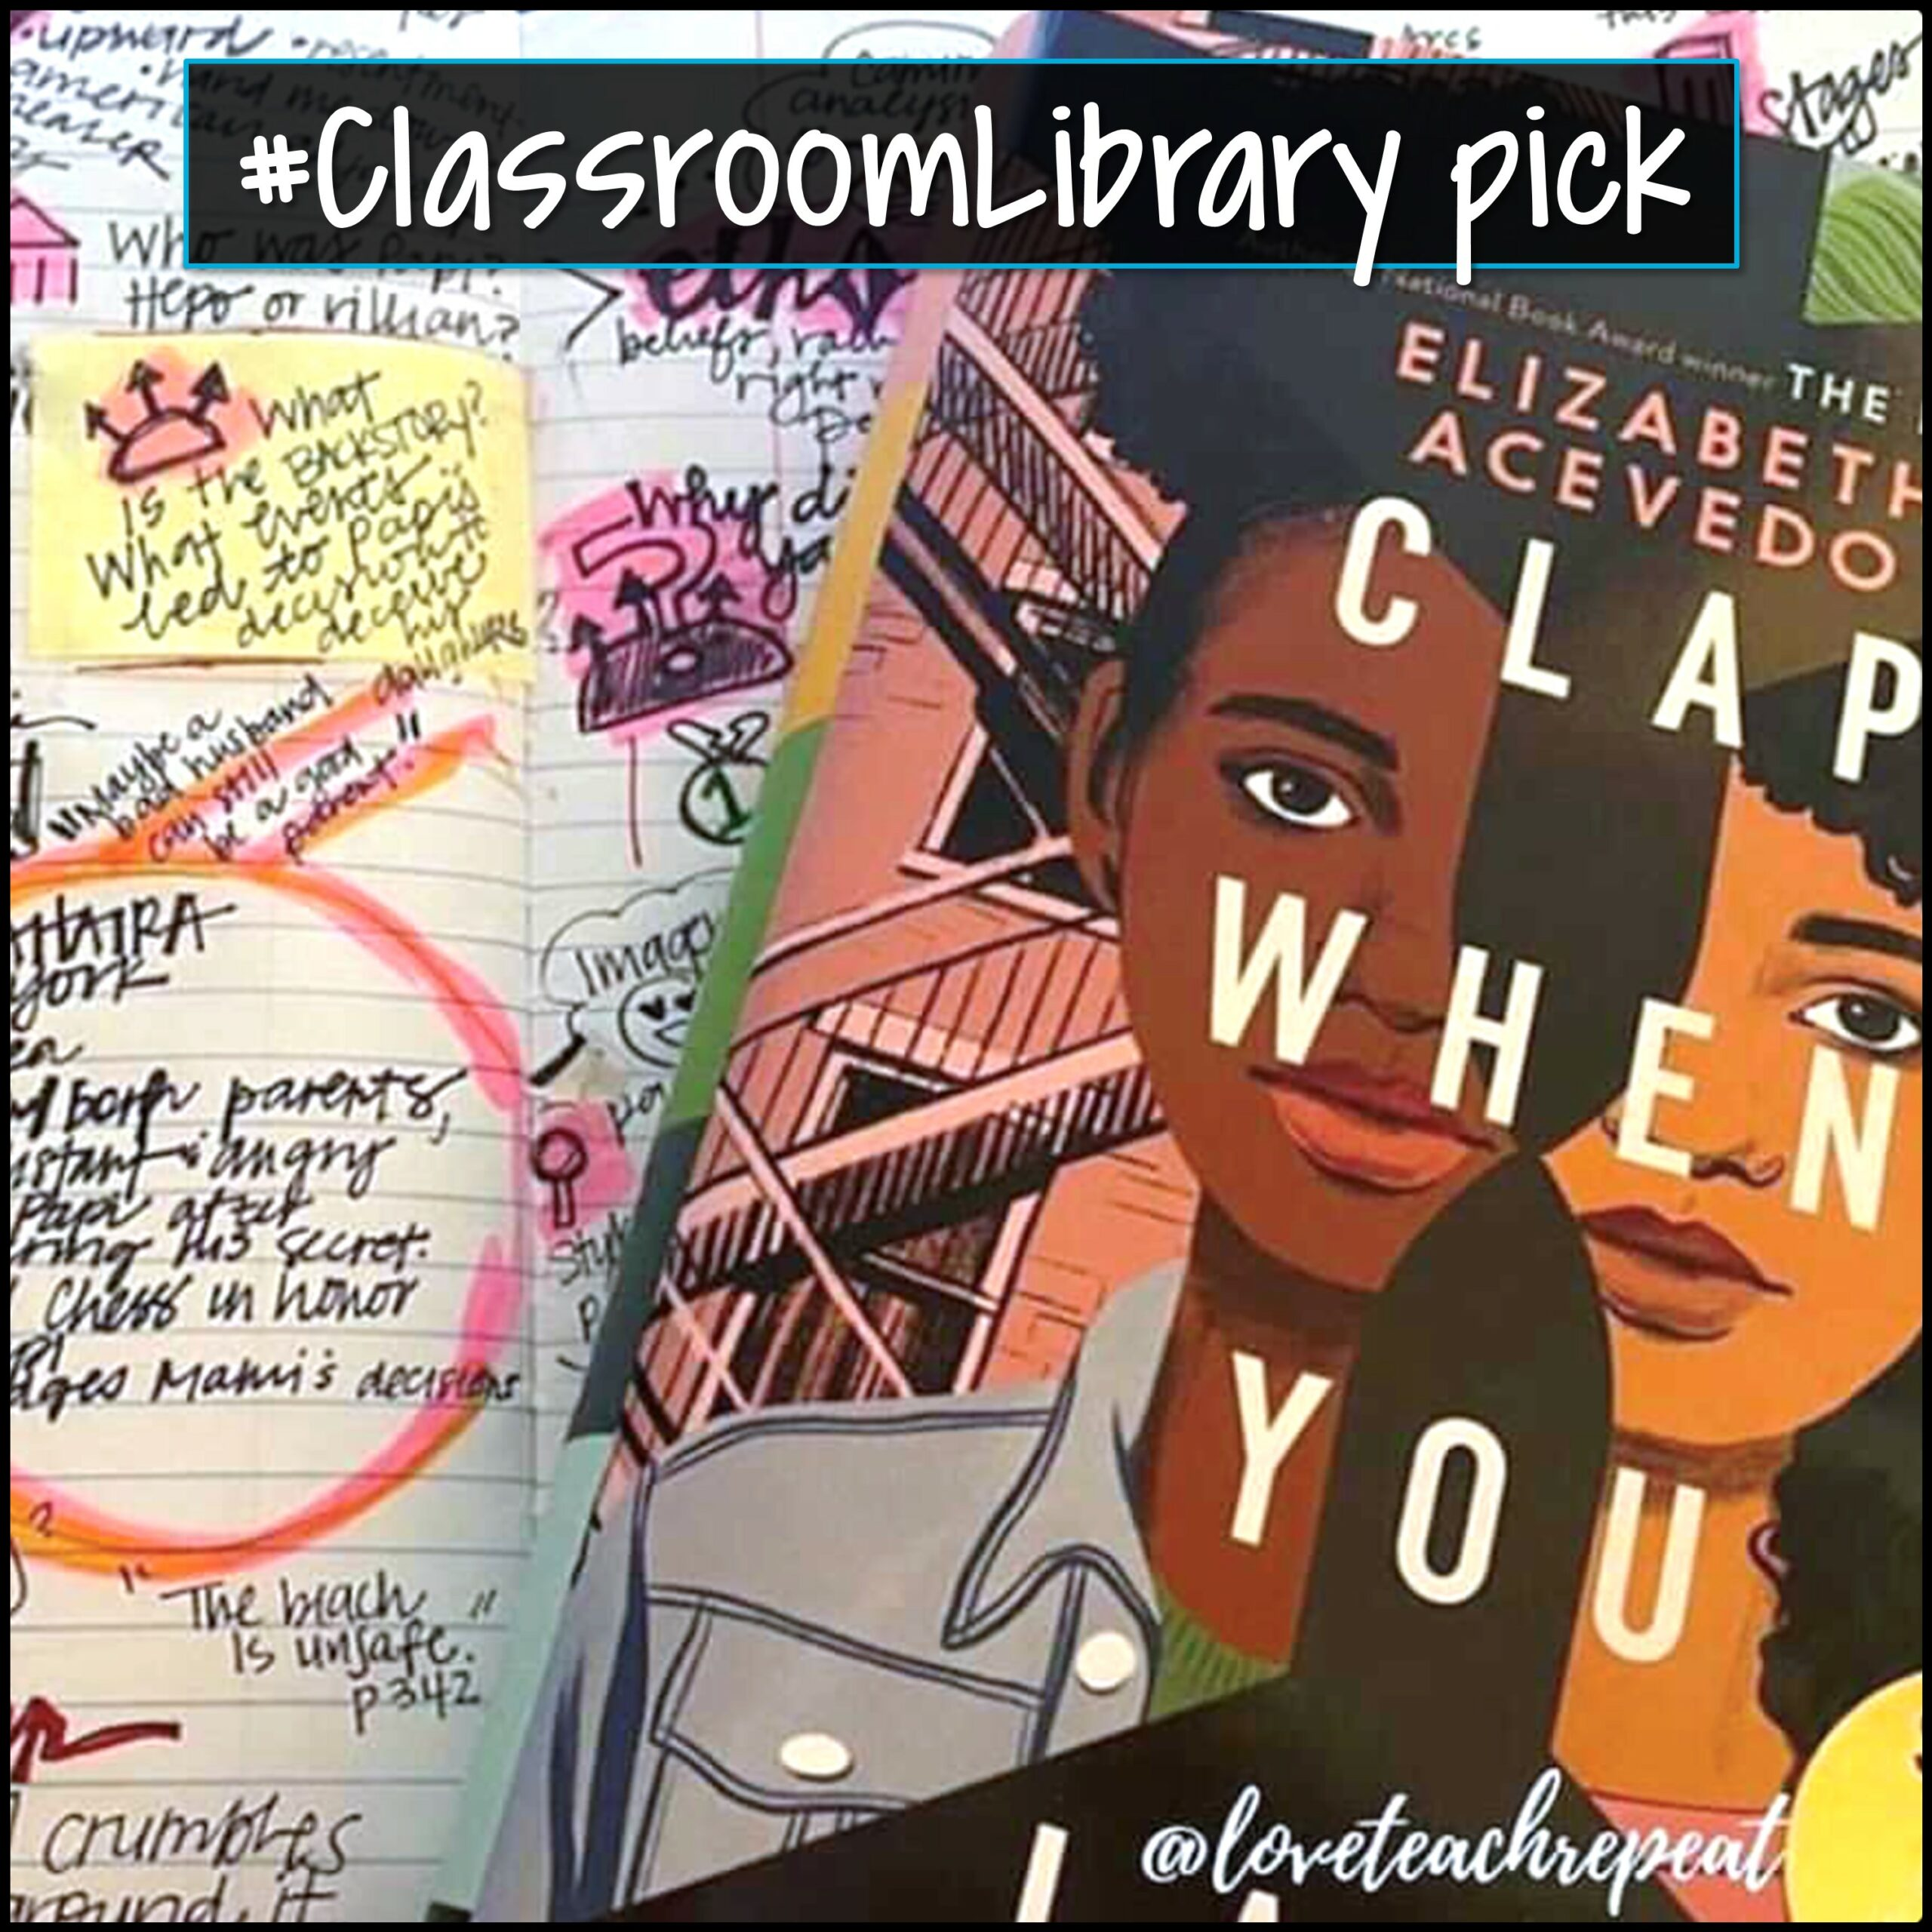 Clap When You Land by Elizabeth Acevedo square image - classroom library pick